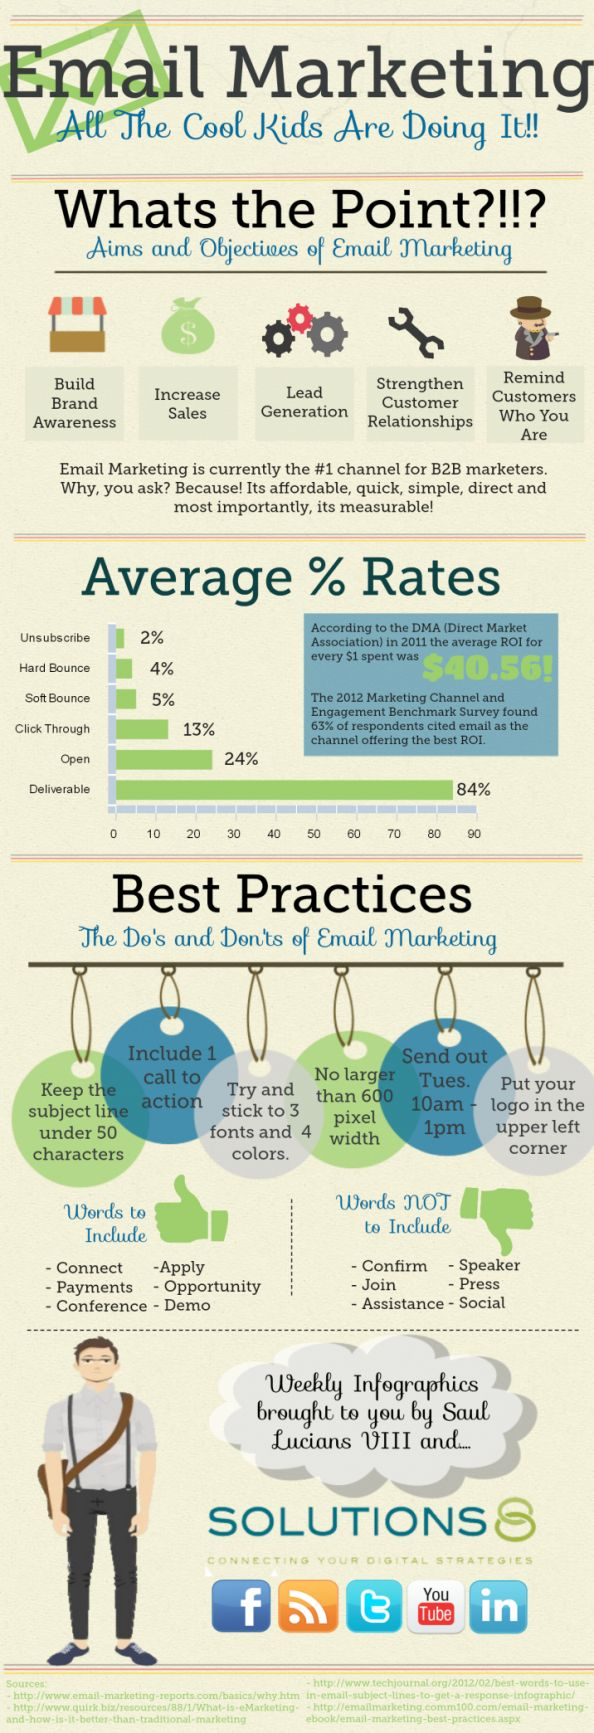 Why is Email Marketing so Important? #Infographic